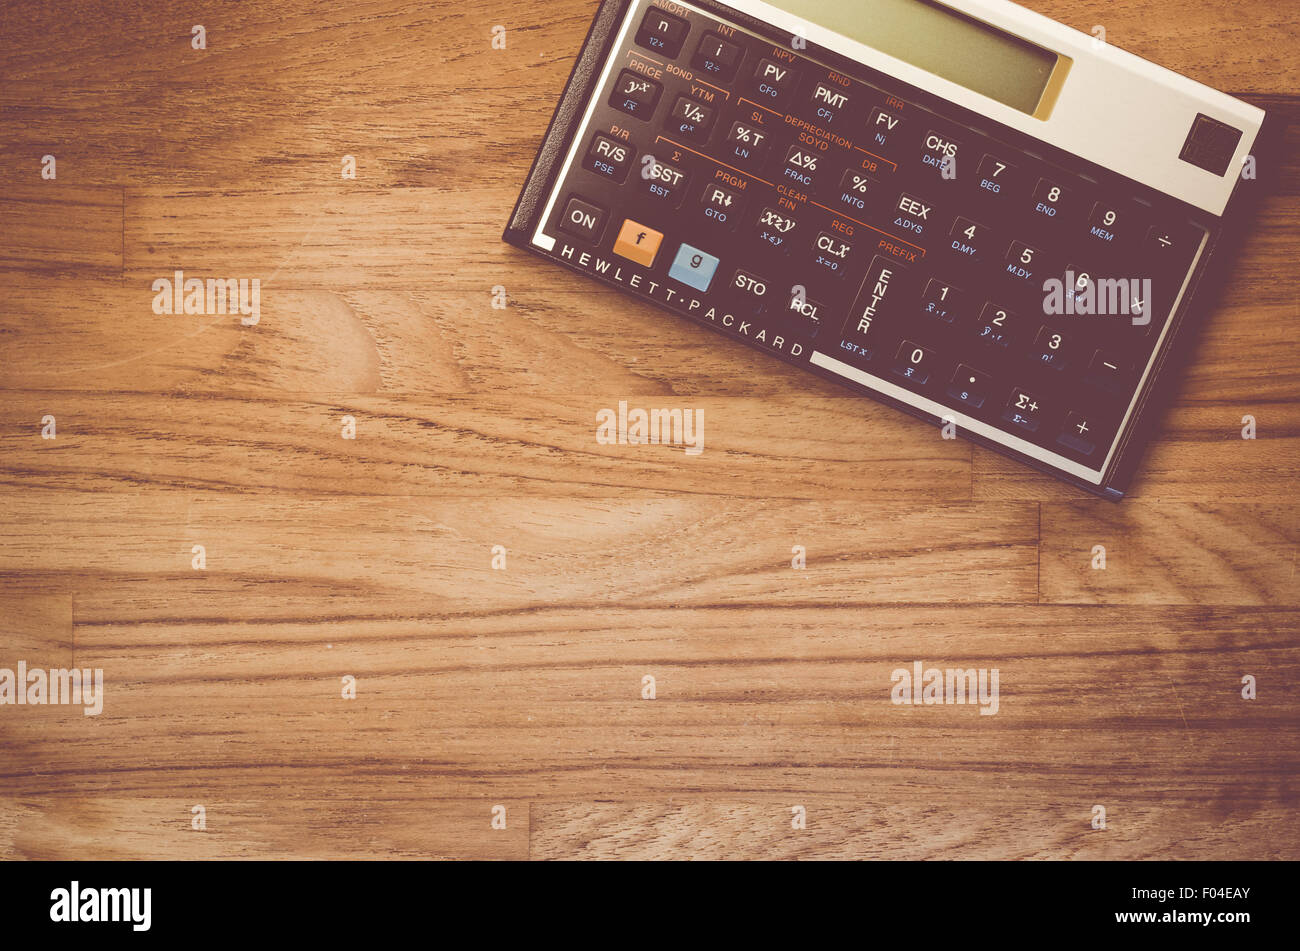 HP 12C Hewlet Packard Rpn Financial Calculator On A Natural Wood Table Top  Background